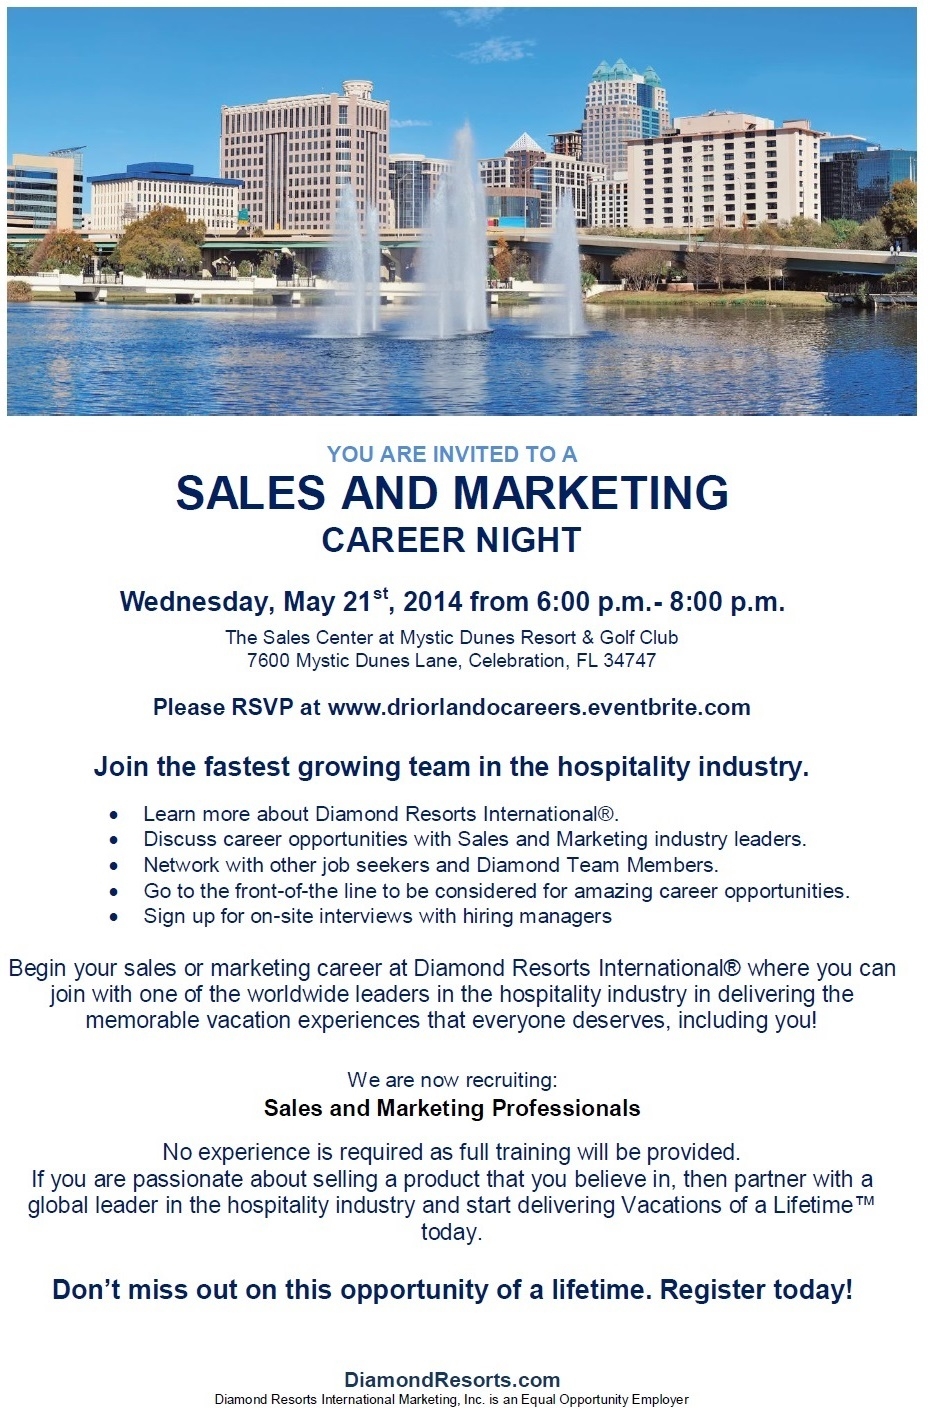 Orlando Career Night May 21, 2014